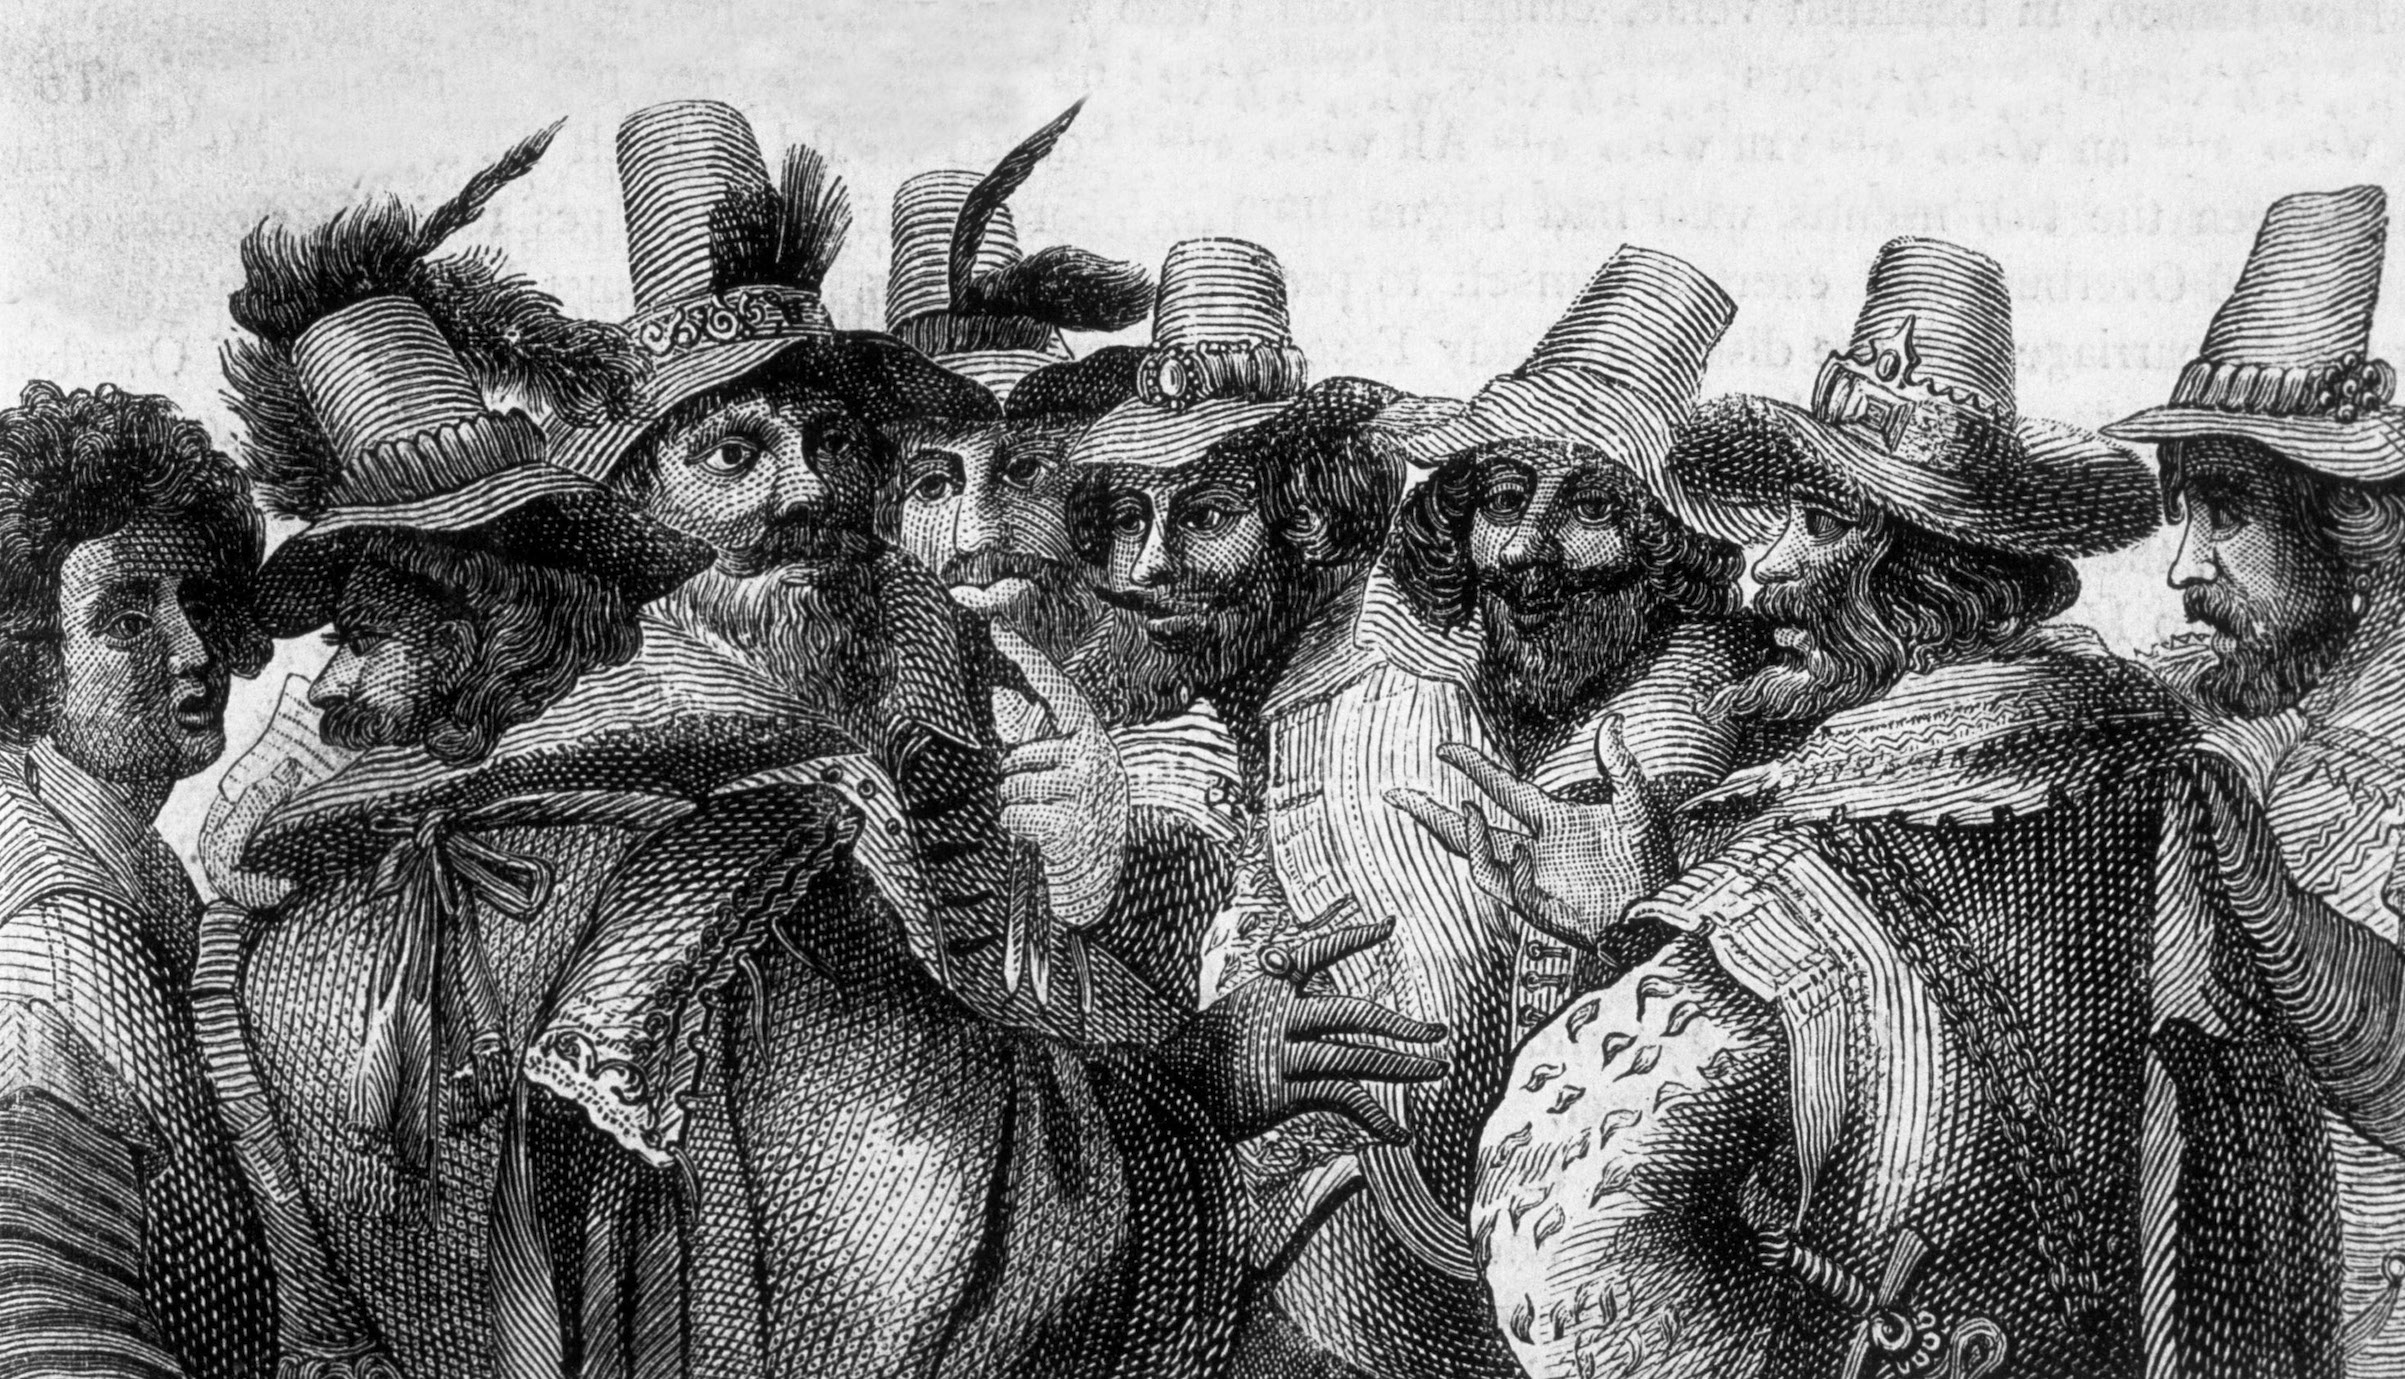 Engraving of Guy Fawkes and other Gunpowder plot conspirators, from OLD AND NEW LONDON (Vol. 1) by Walter Thornbury, 1897.